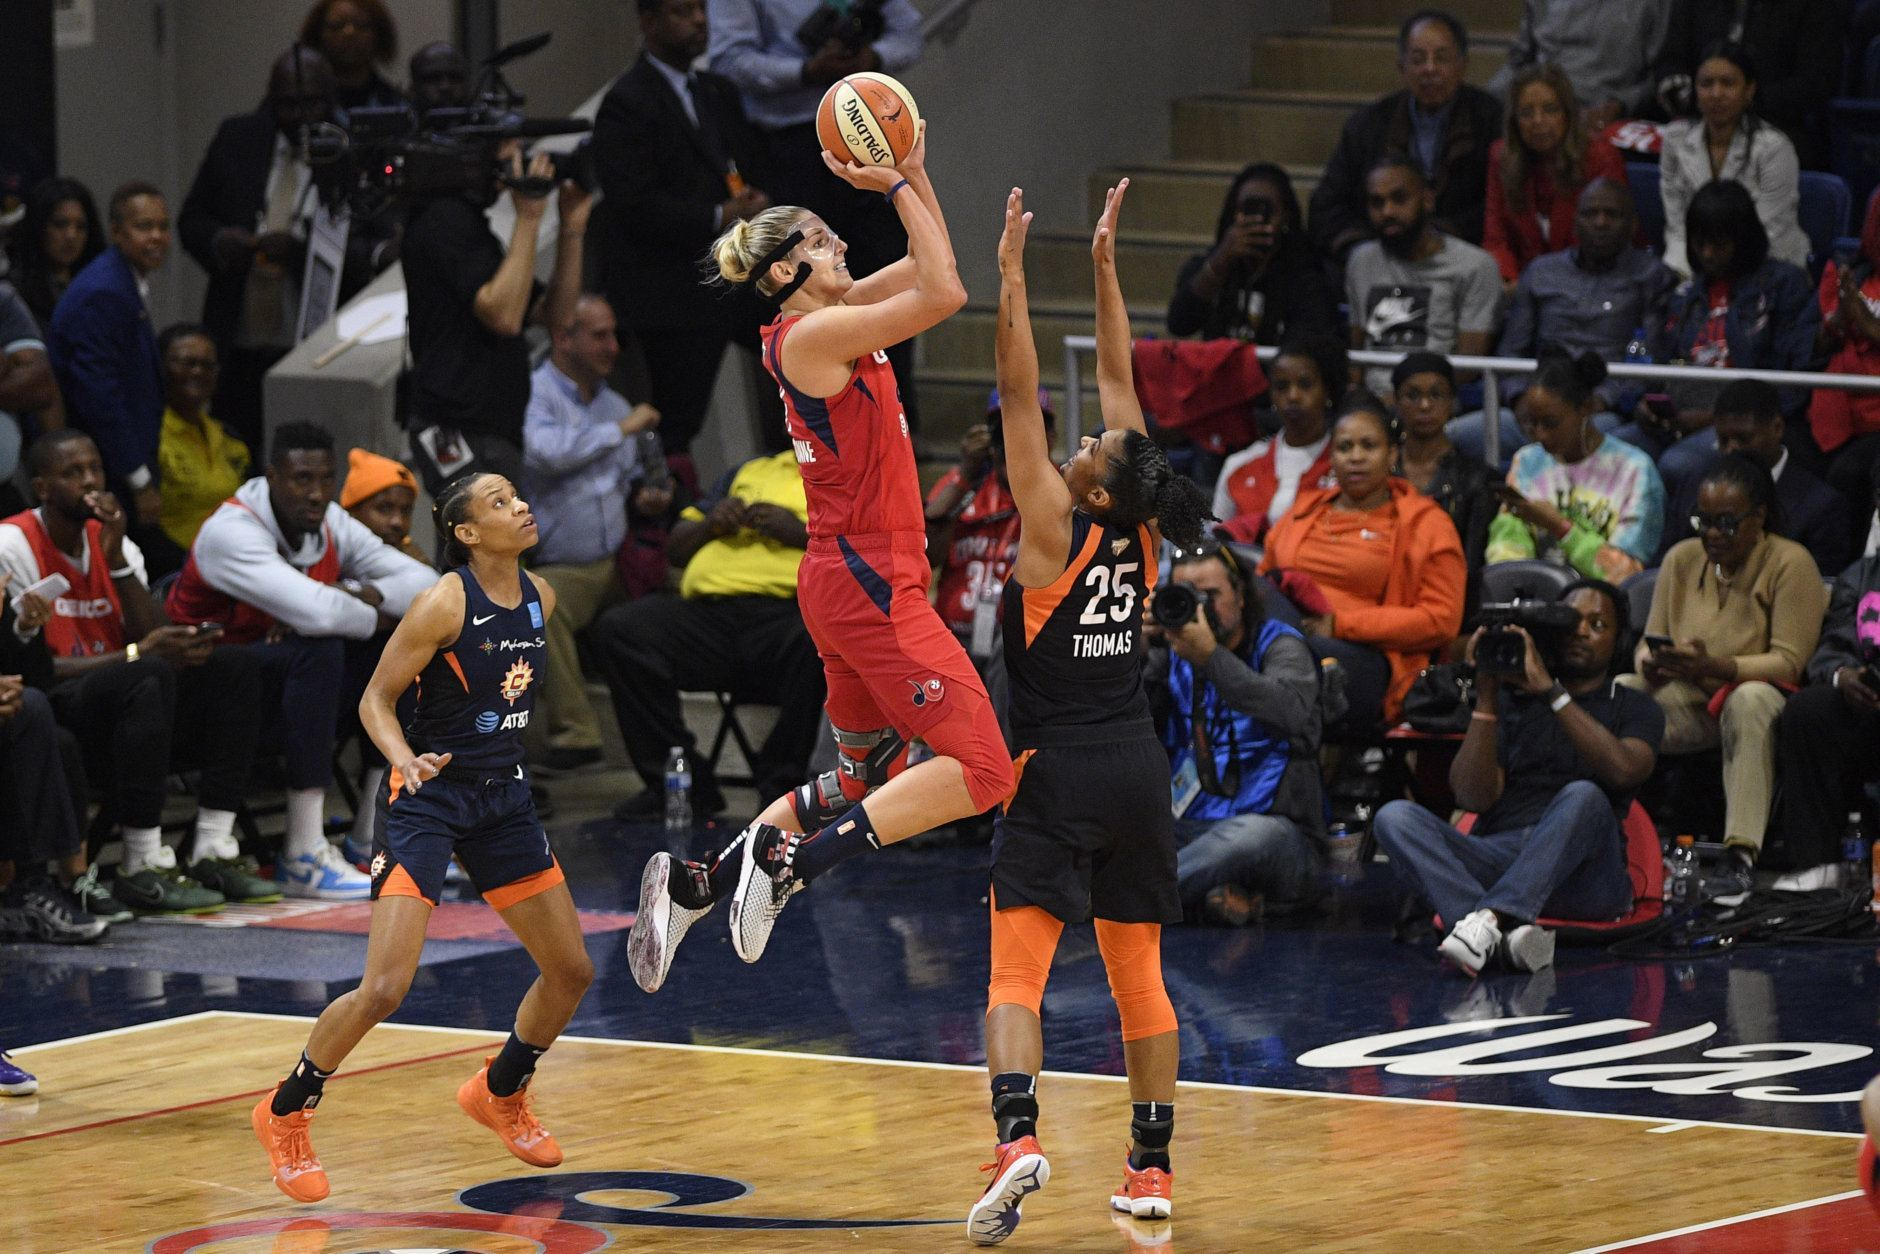 Washington Mystics forward Elena Delle Donne, center, shoots between Connecticut Sun guard Jasmine Thomas, left, and forward Alyssa Thomas (25) in the second half of Game 5 of basketball's WNBA Finals, Thursday, Oct. 10, 2019, in Washington. (AP Photo/Nick Wass)